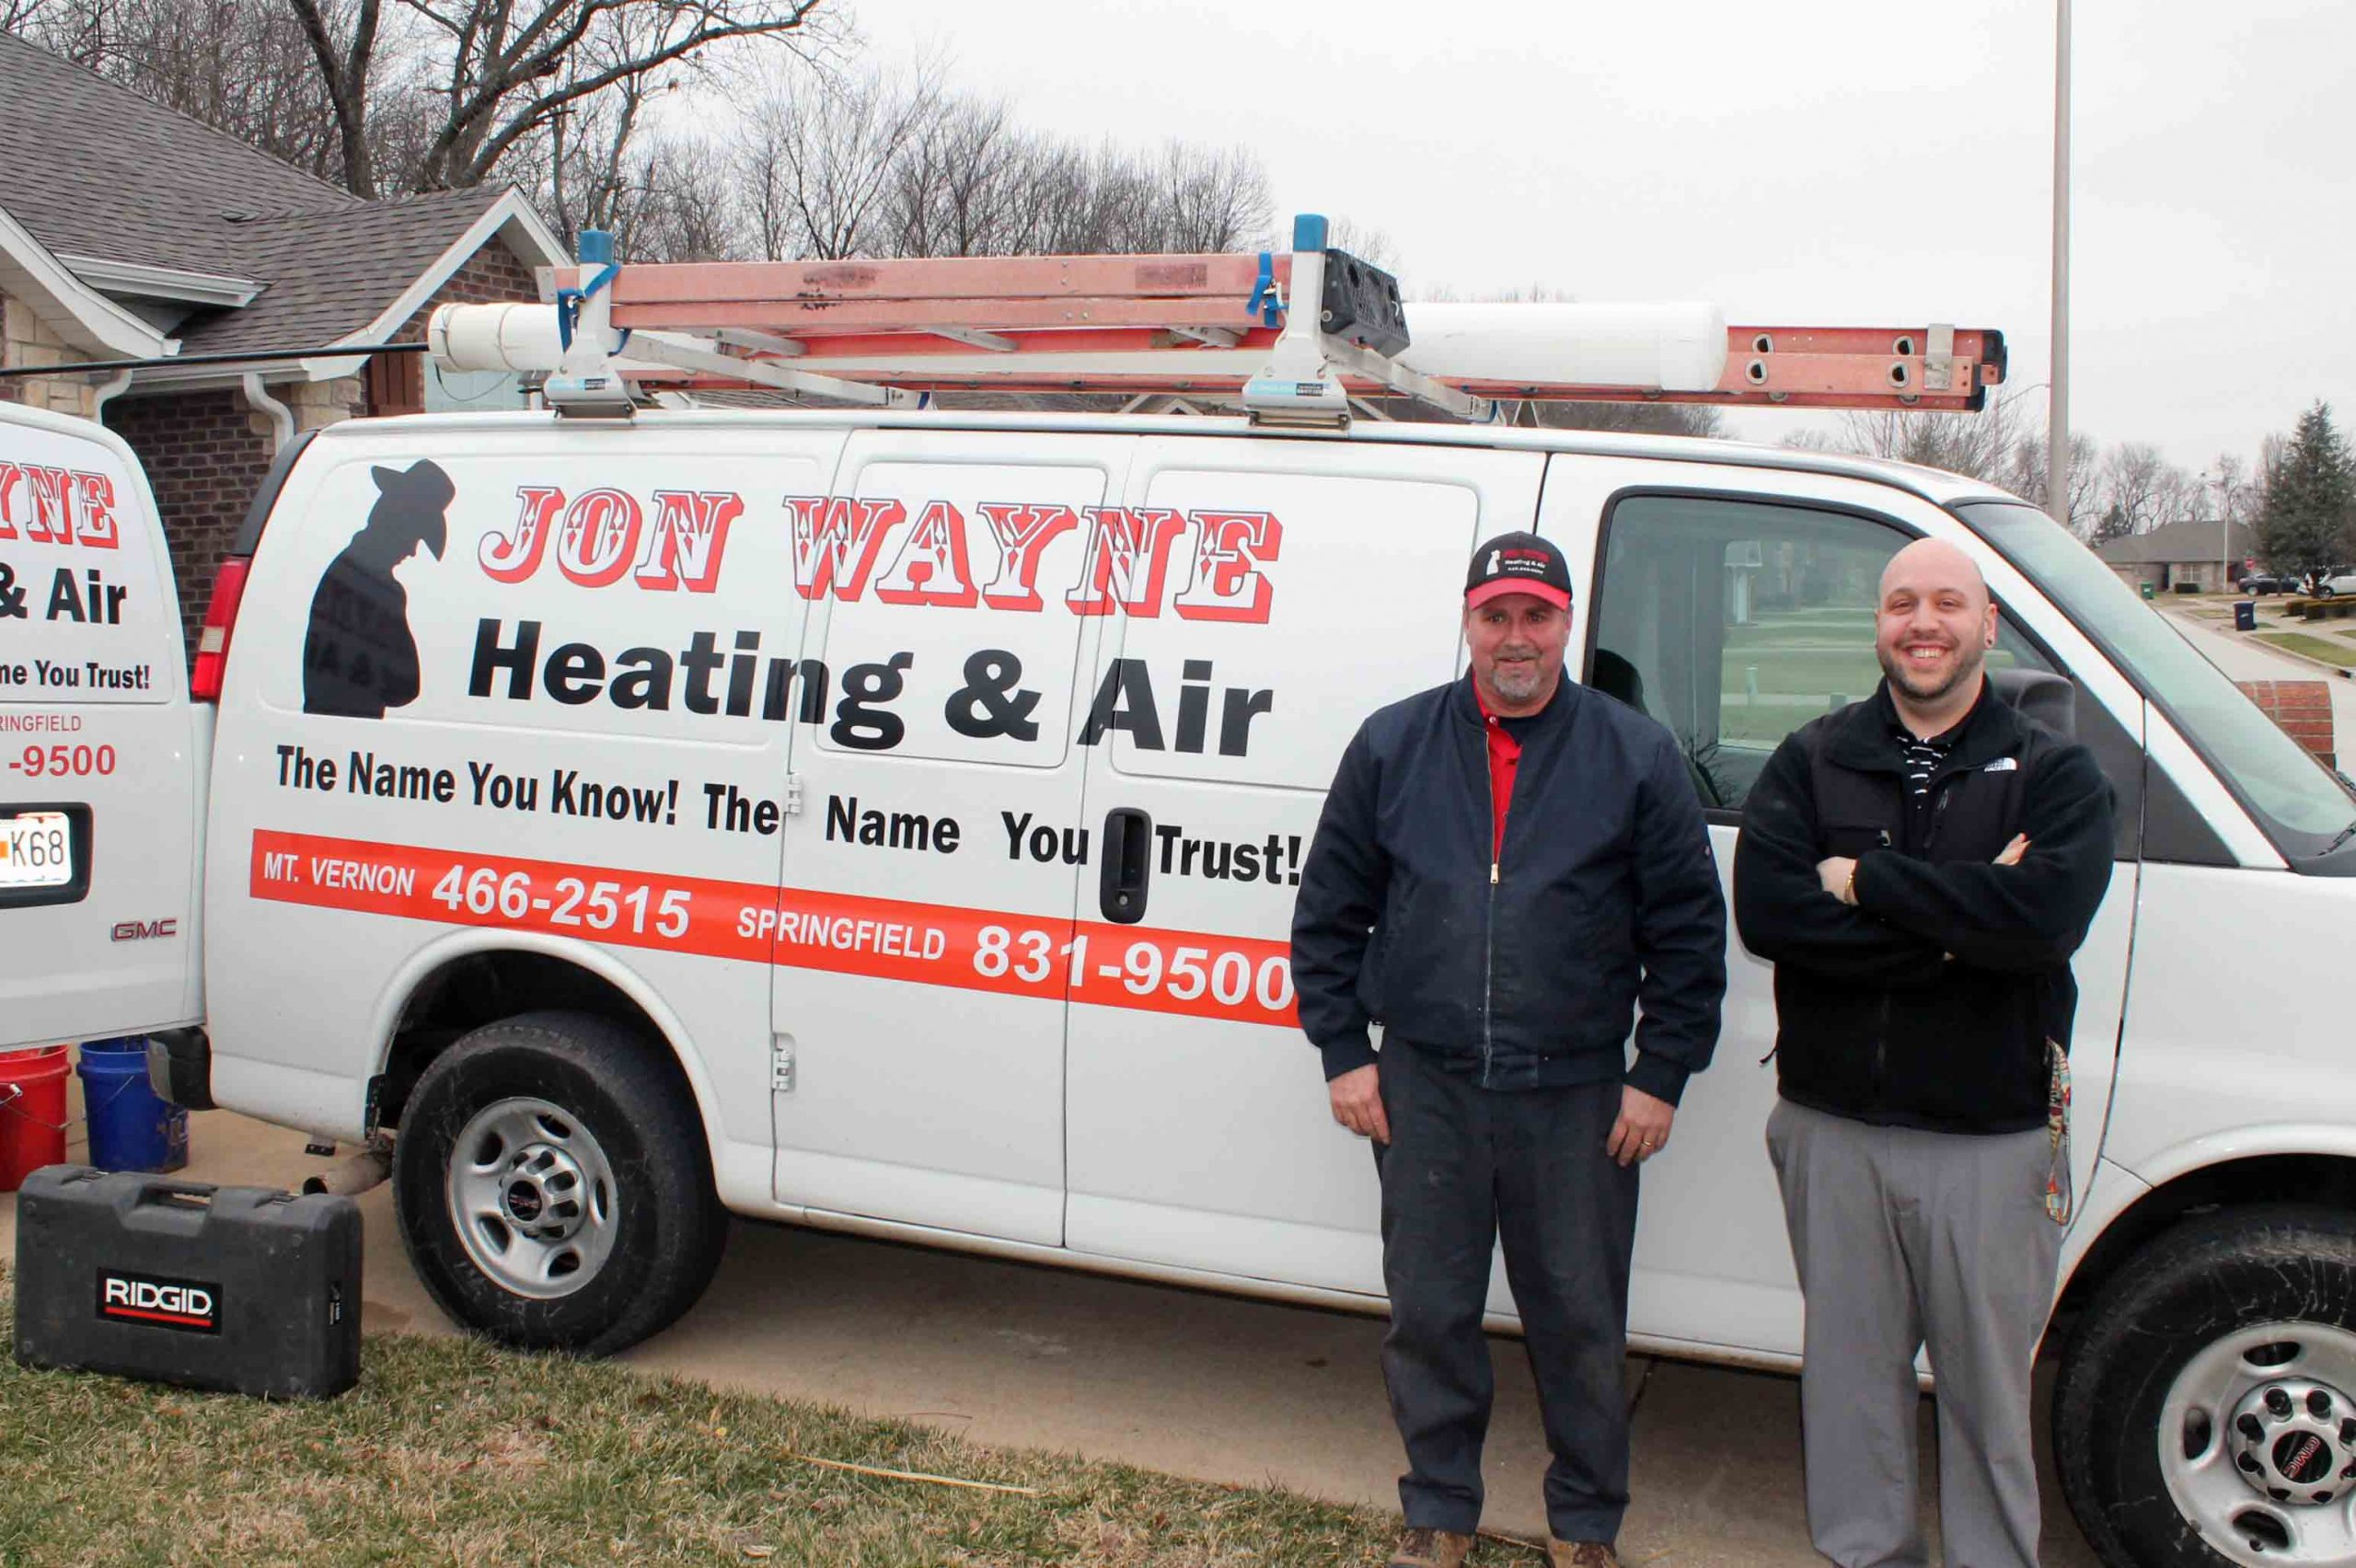 Jon Wayne co-owner and tech in front of HVAC van in Mt Vernon